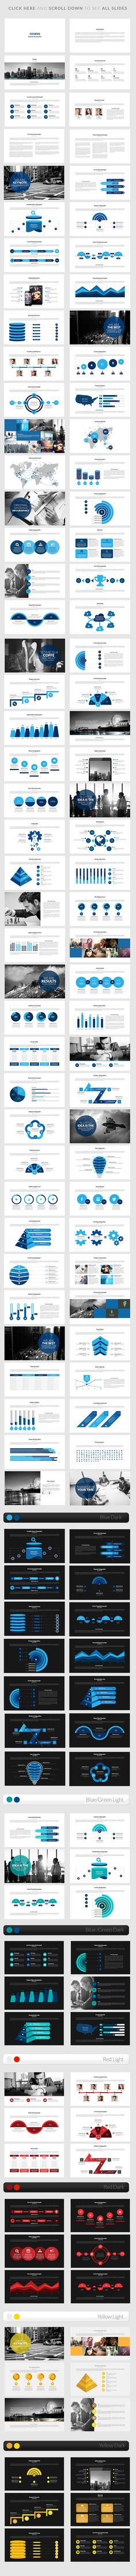 Genesis | Powerpoint Presentation by Zacomic Studios on Creative Market